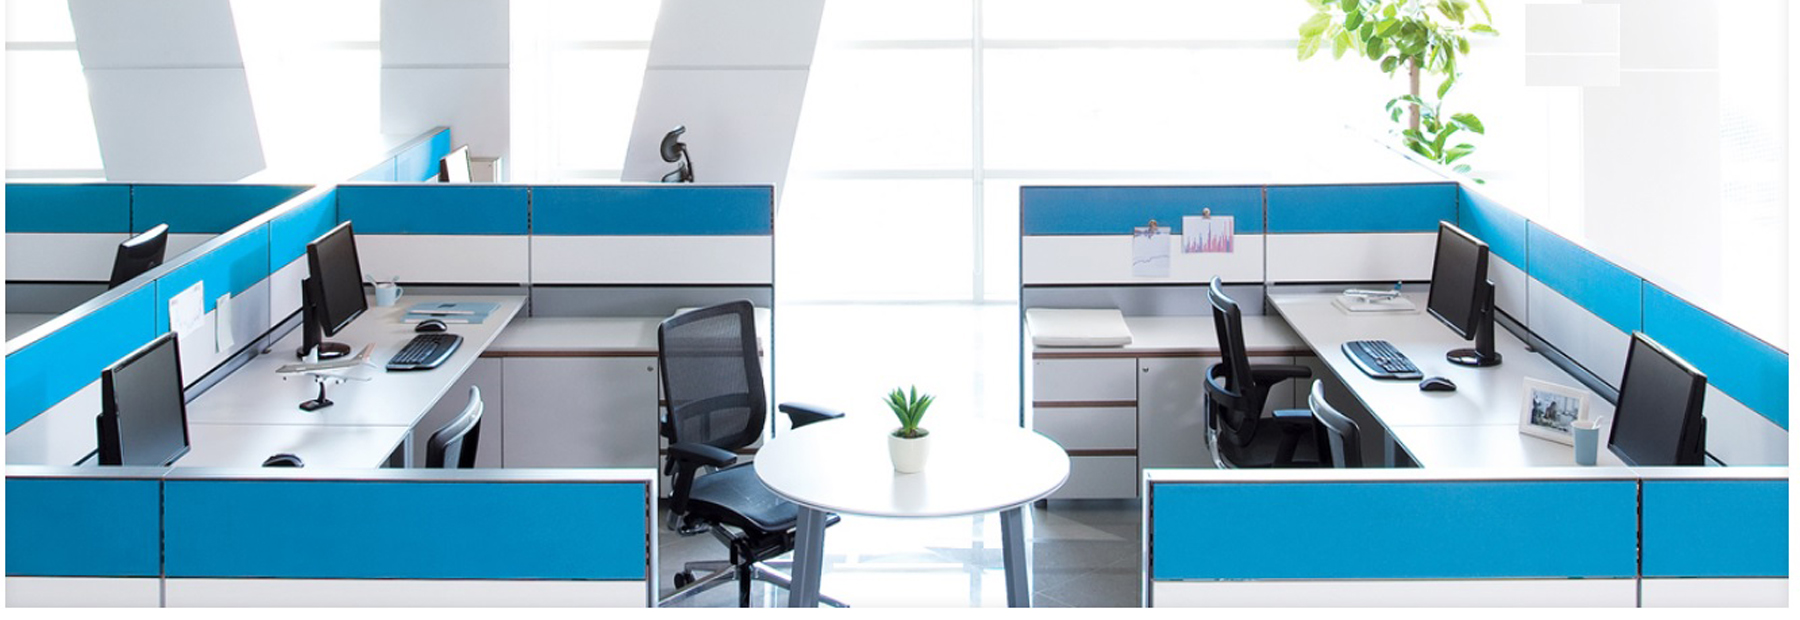 Office Furniture Los Angeles Office Furniture Store Office Furniture Store near me Conference Table Cubicle Work Station New and Used Office Furniture Laminate Desk Work space floor plan Chairs Los Angeles California